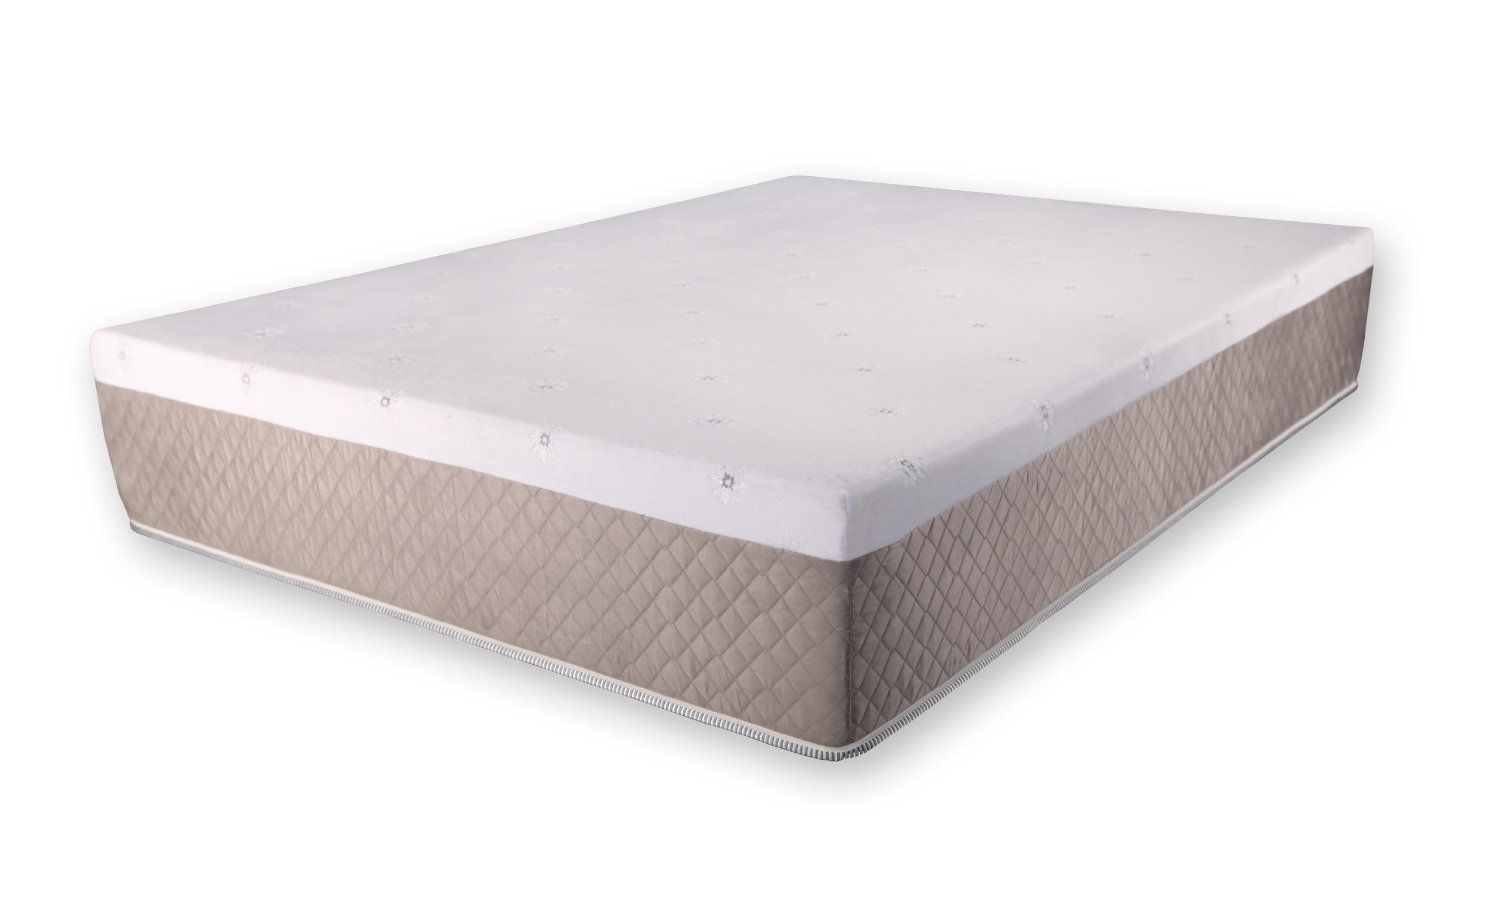 yacht foam mattresses home shapes linen mattress memoryfoam and crew product core memory tri